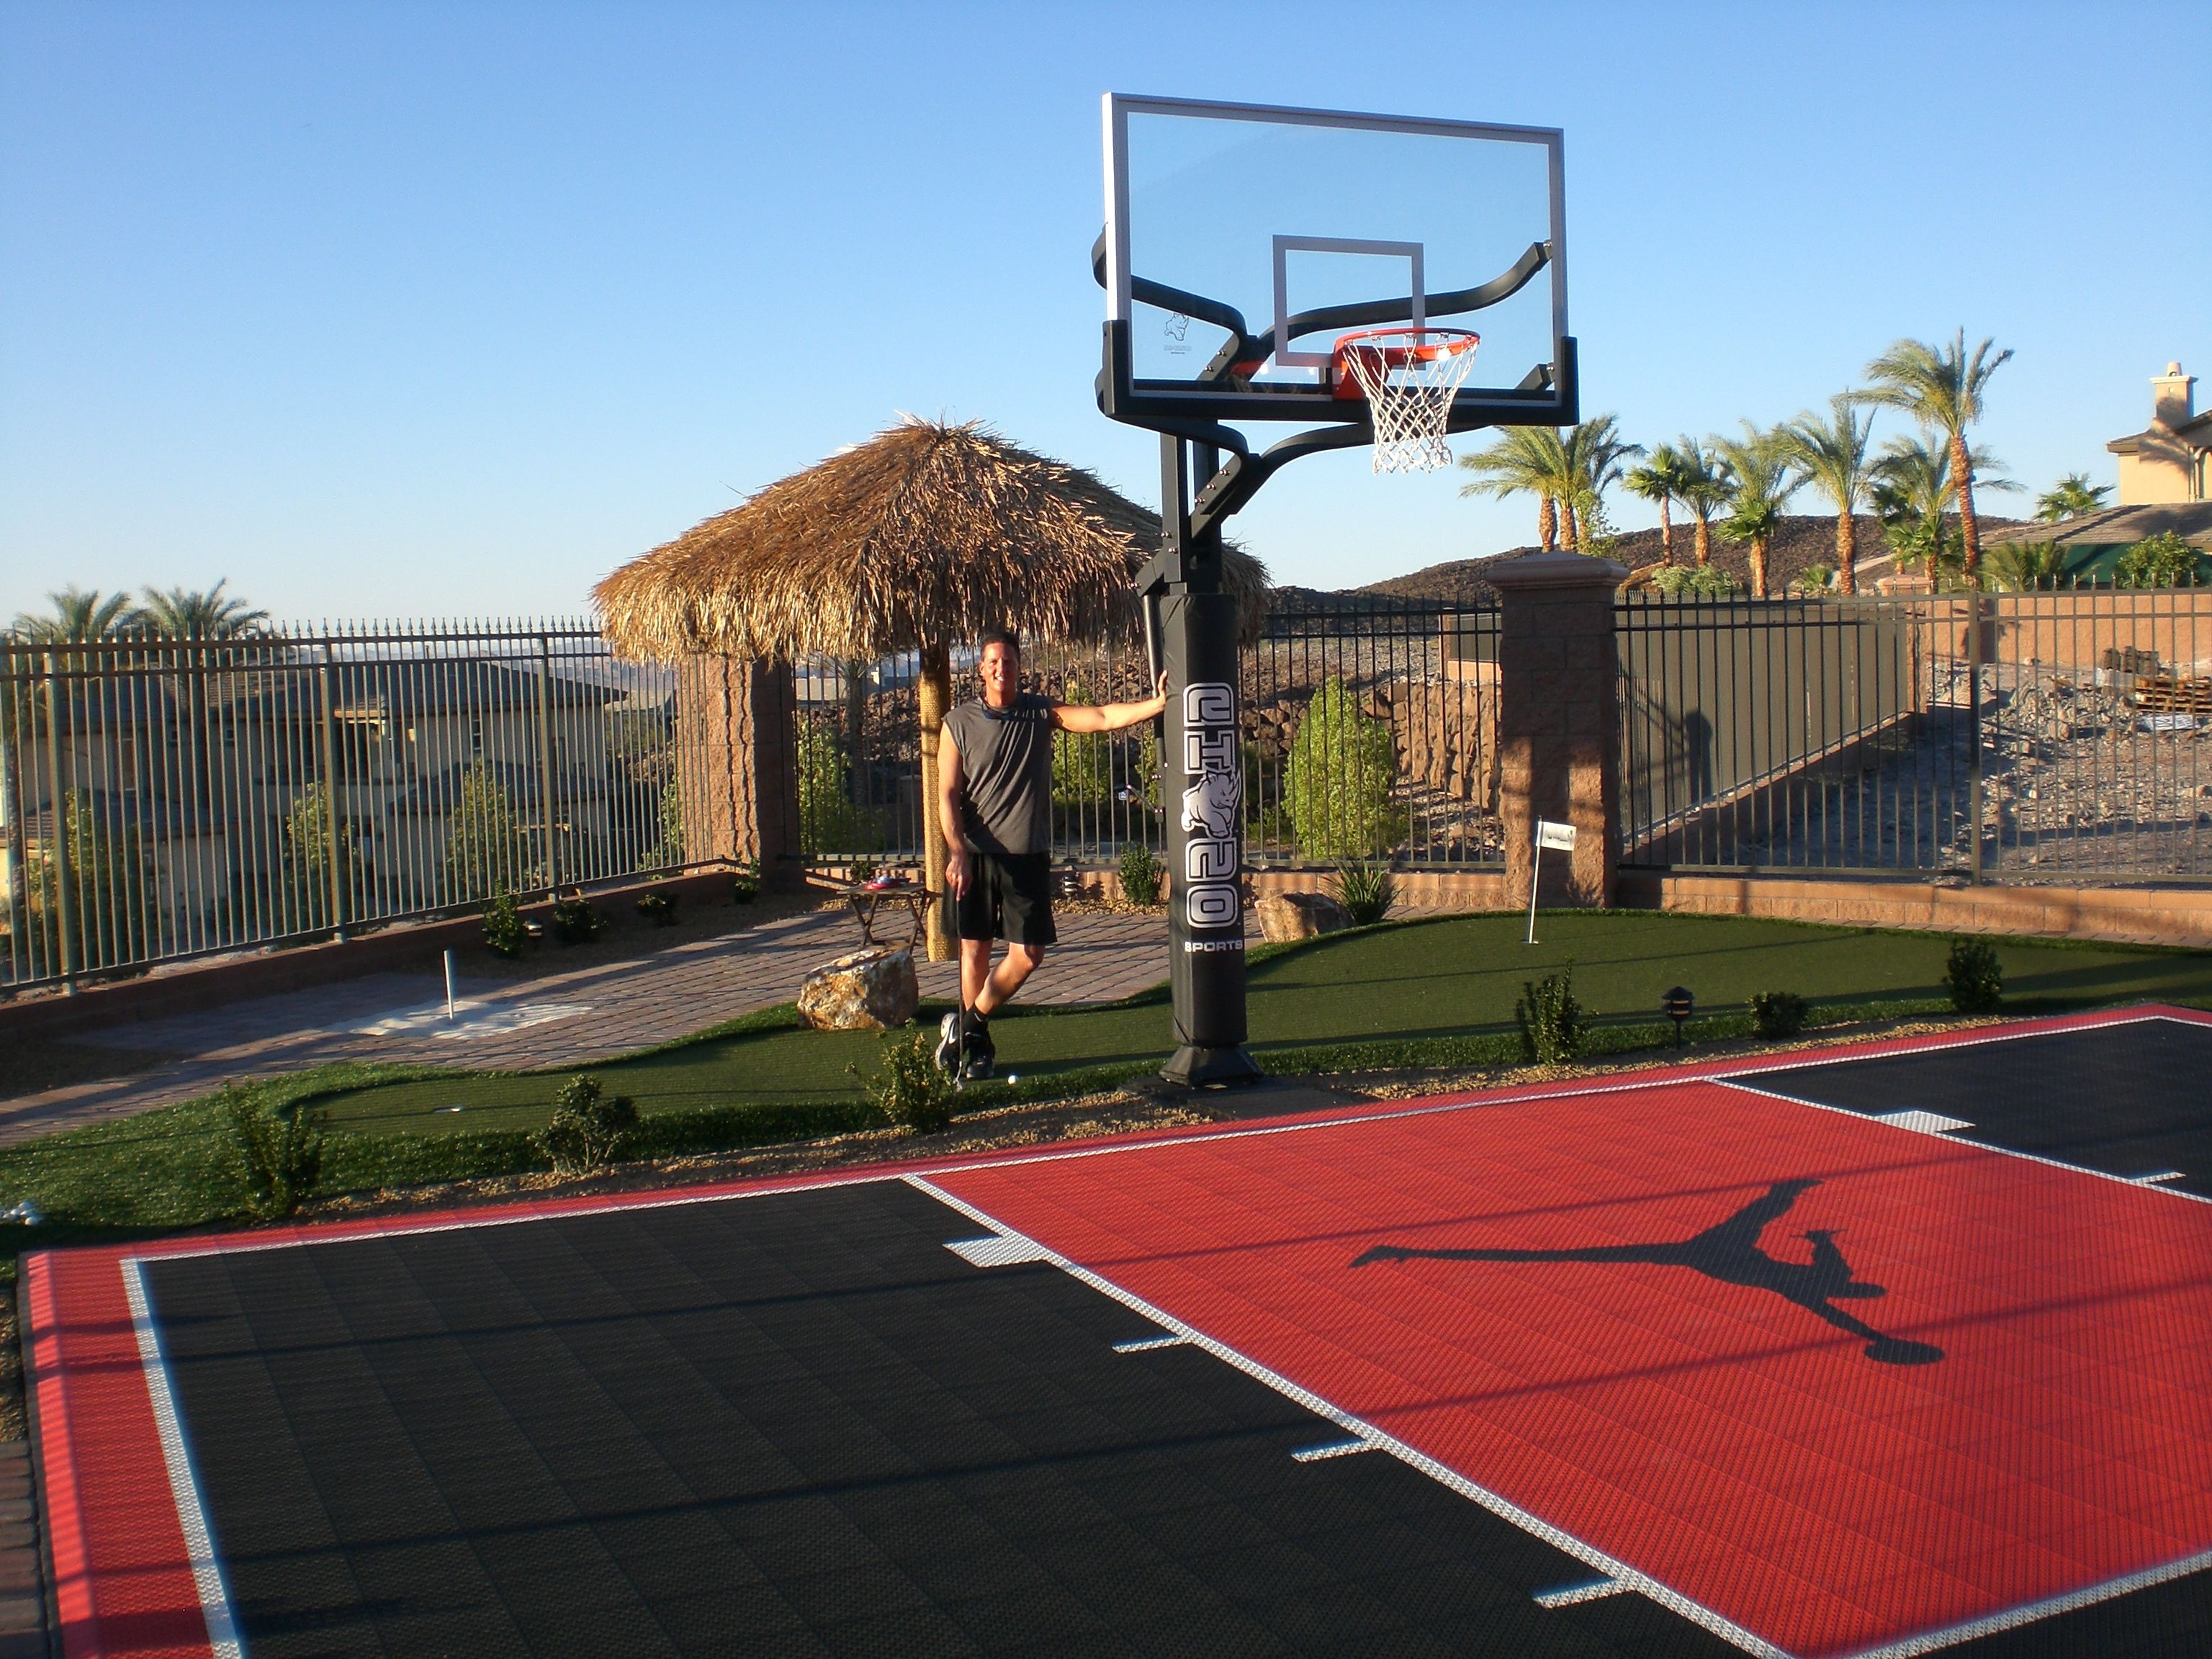 #JamesMalinchak Big Money Speaker Backyard With Custom Basketball Court,  Golf, Horseshoes ,Tiki